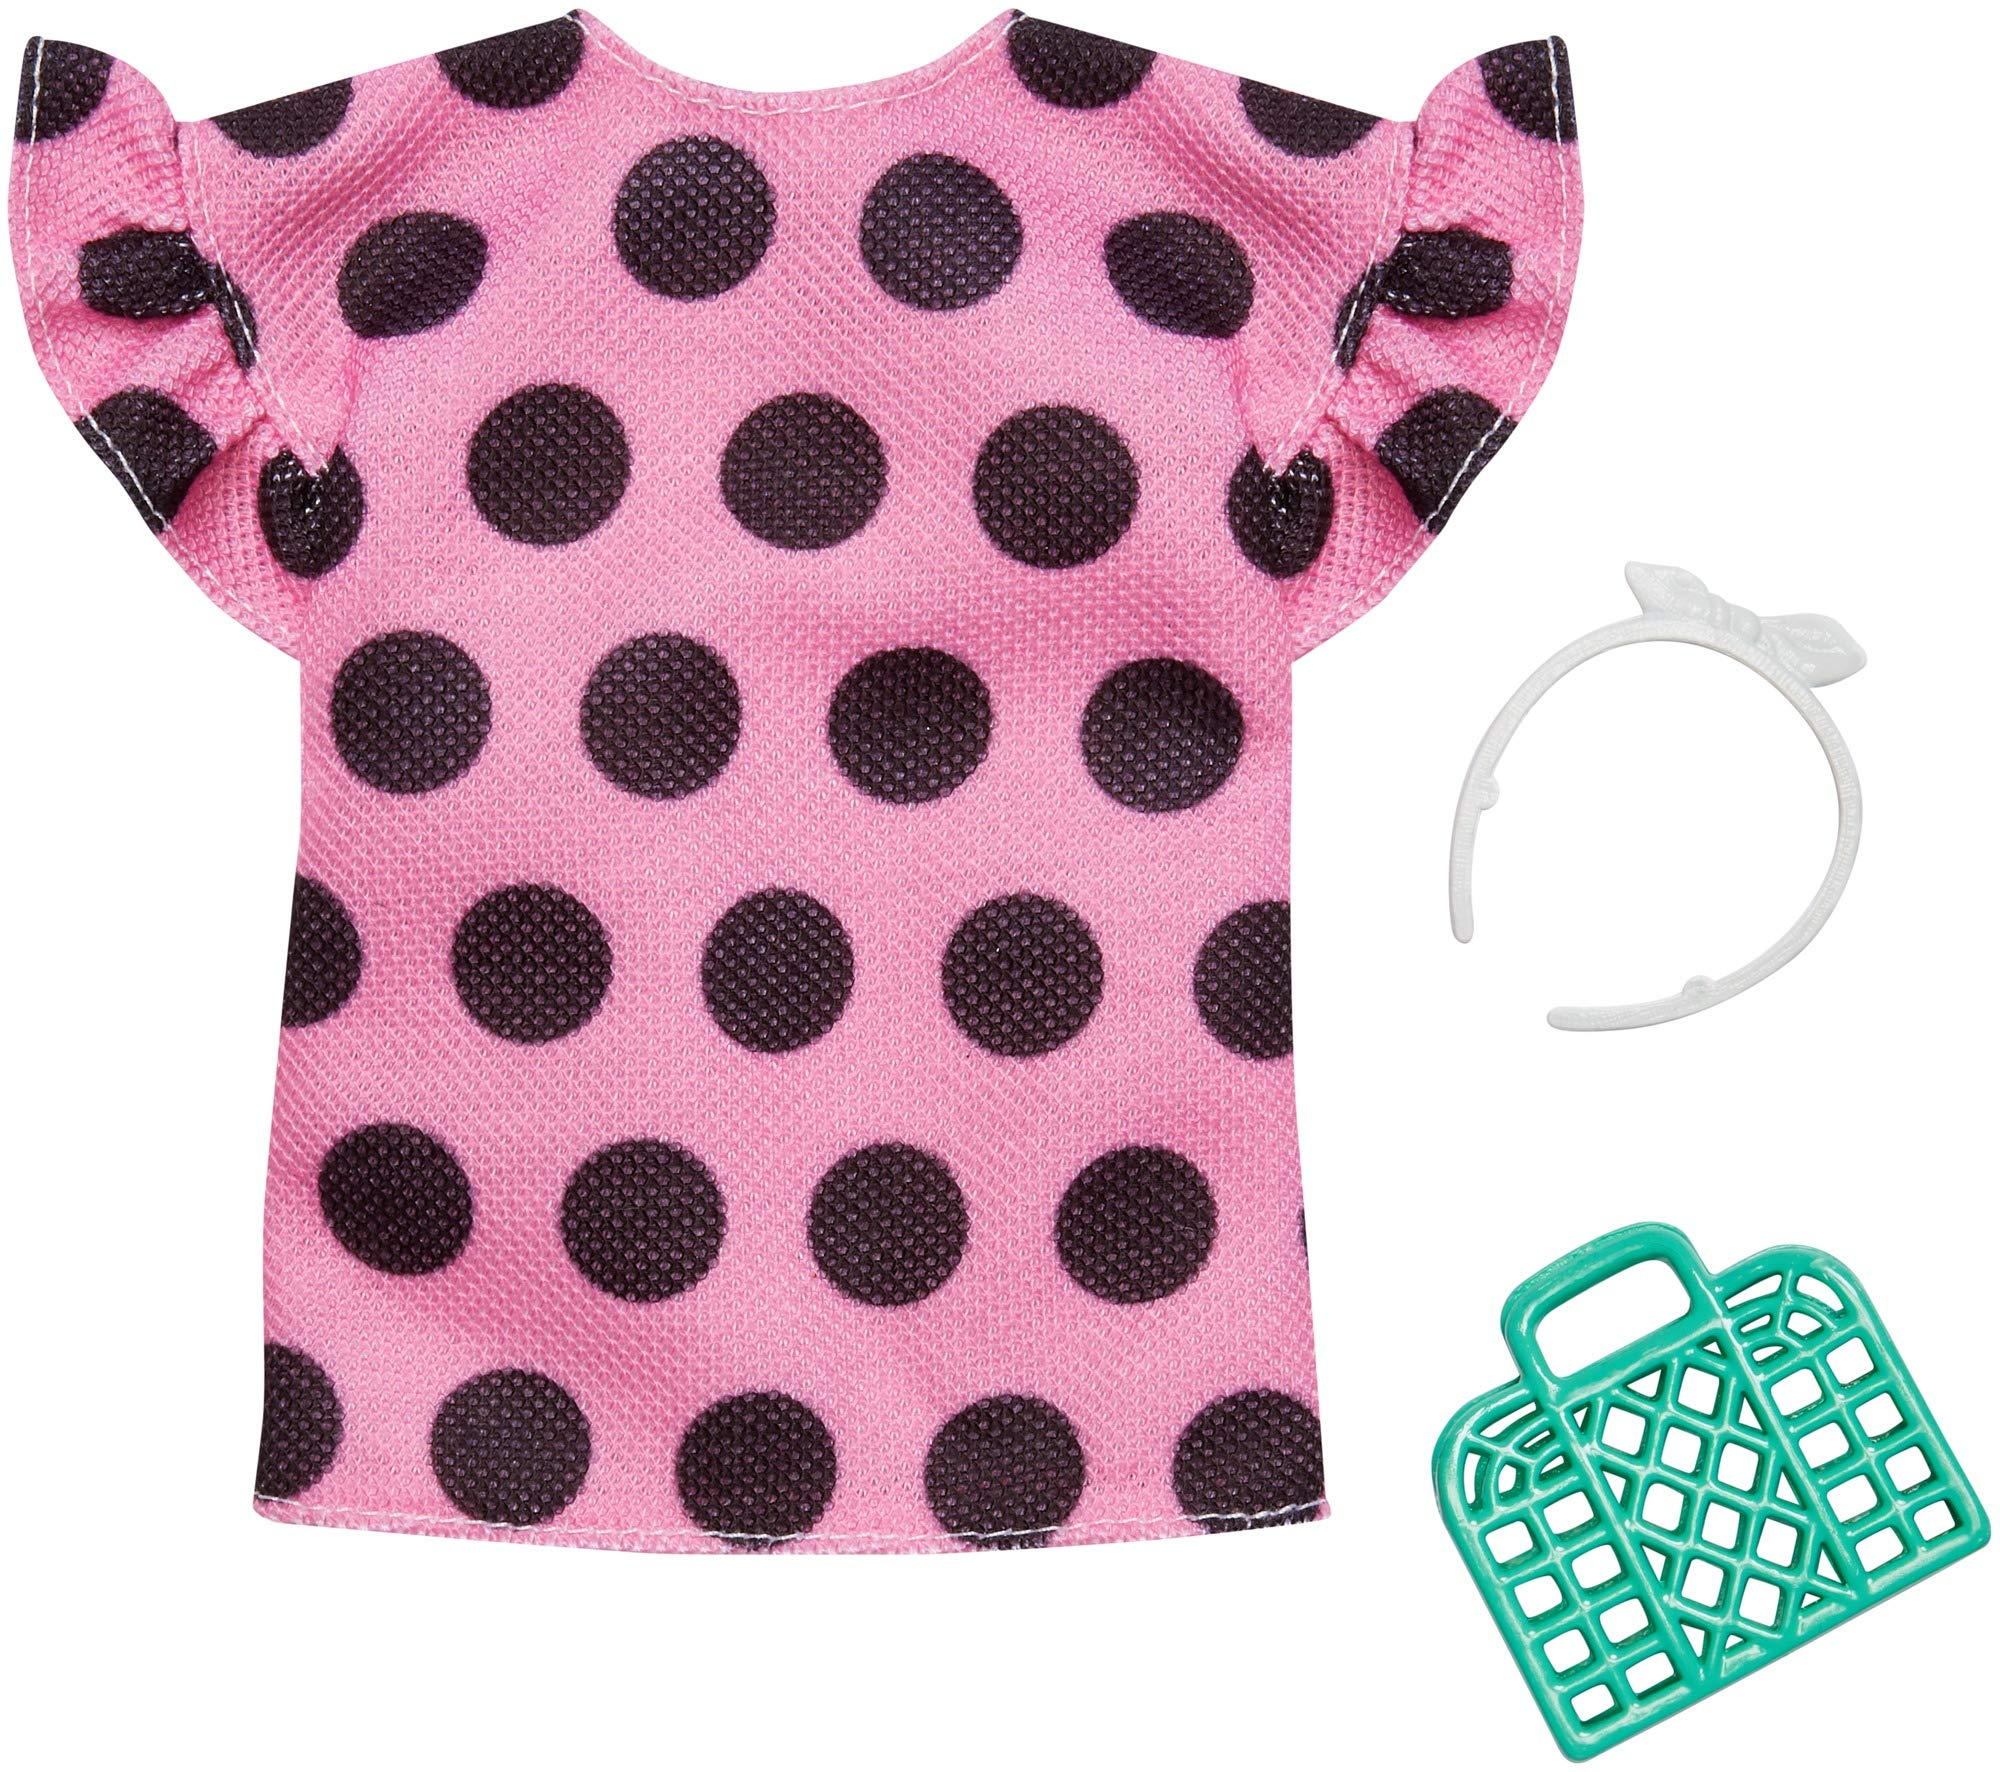 Barbie - Complete Looks - Pink Dotted Shirt And Accessory (FXJ13)